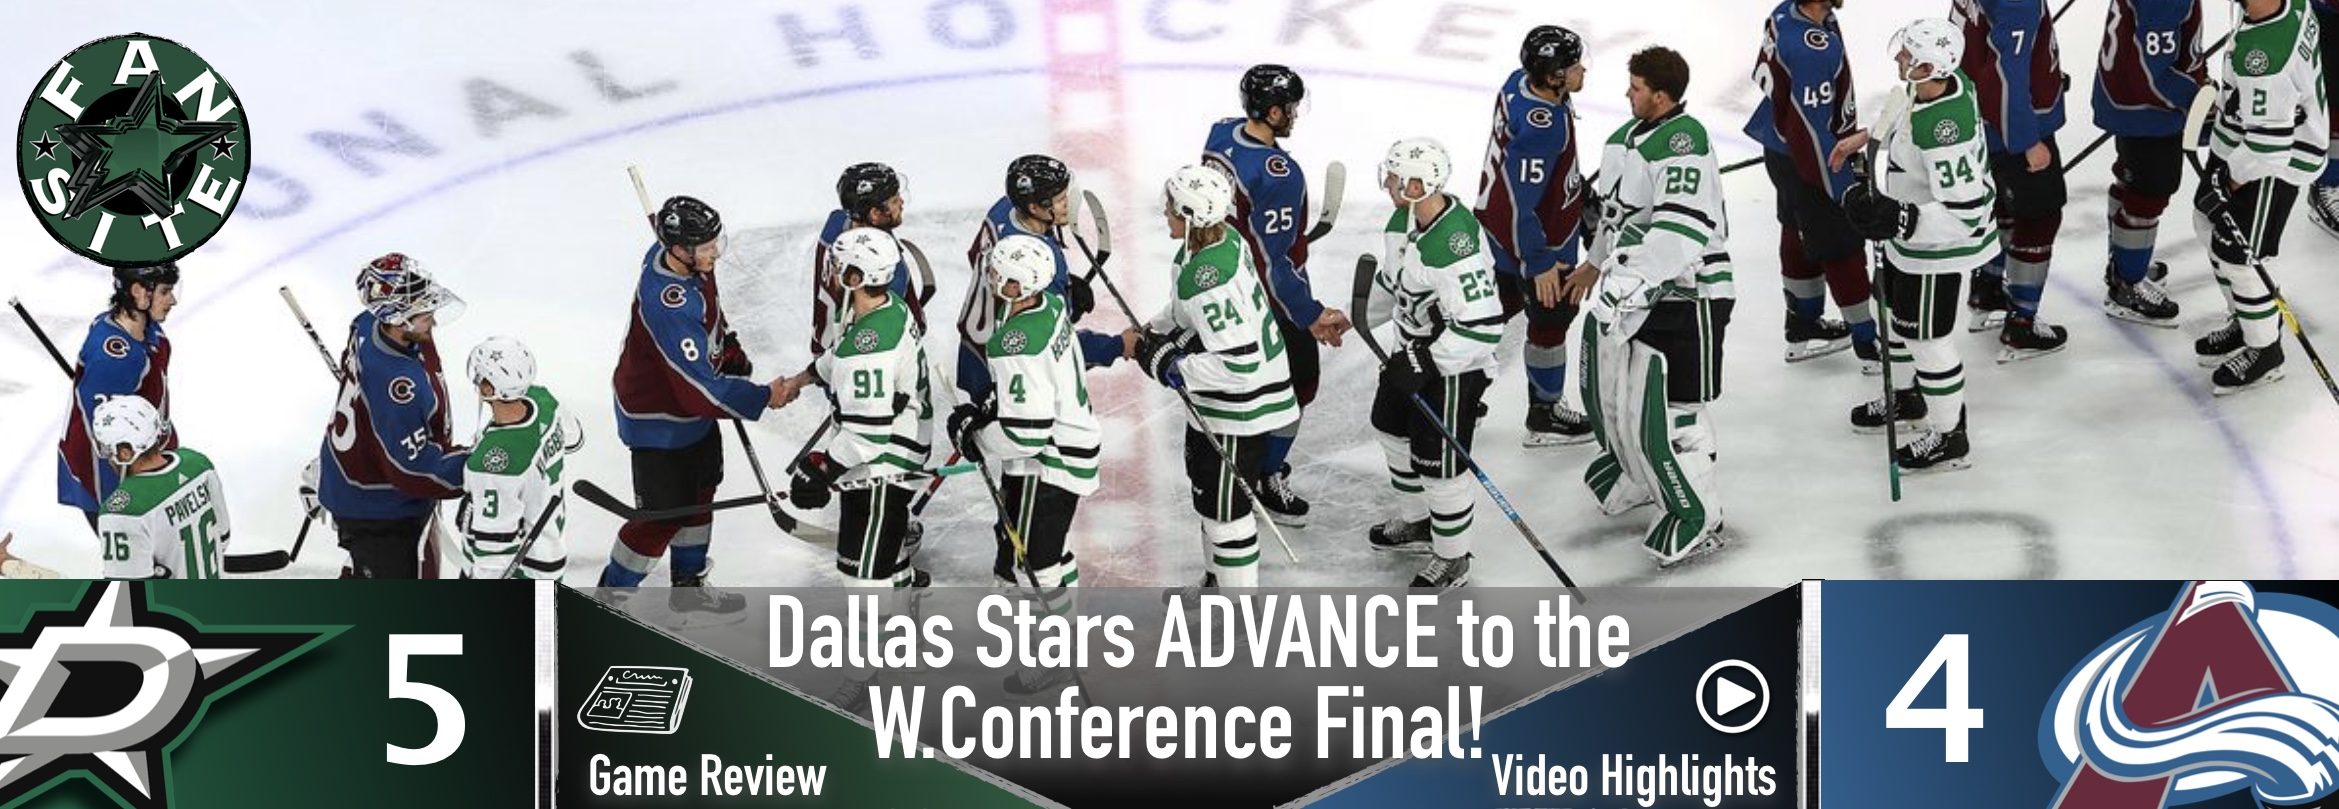 Dallas Stars ADVANCE to the Western Conference Final!